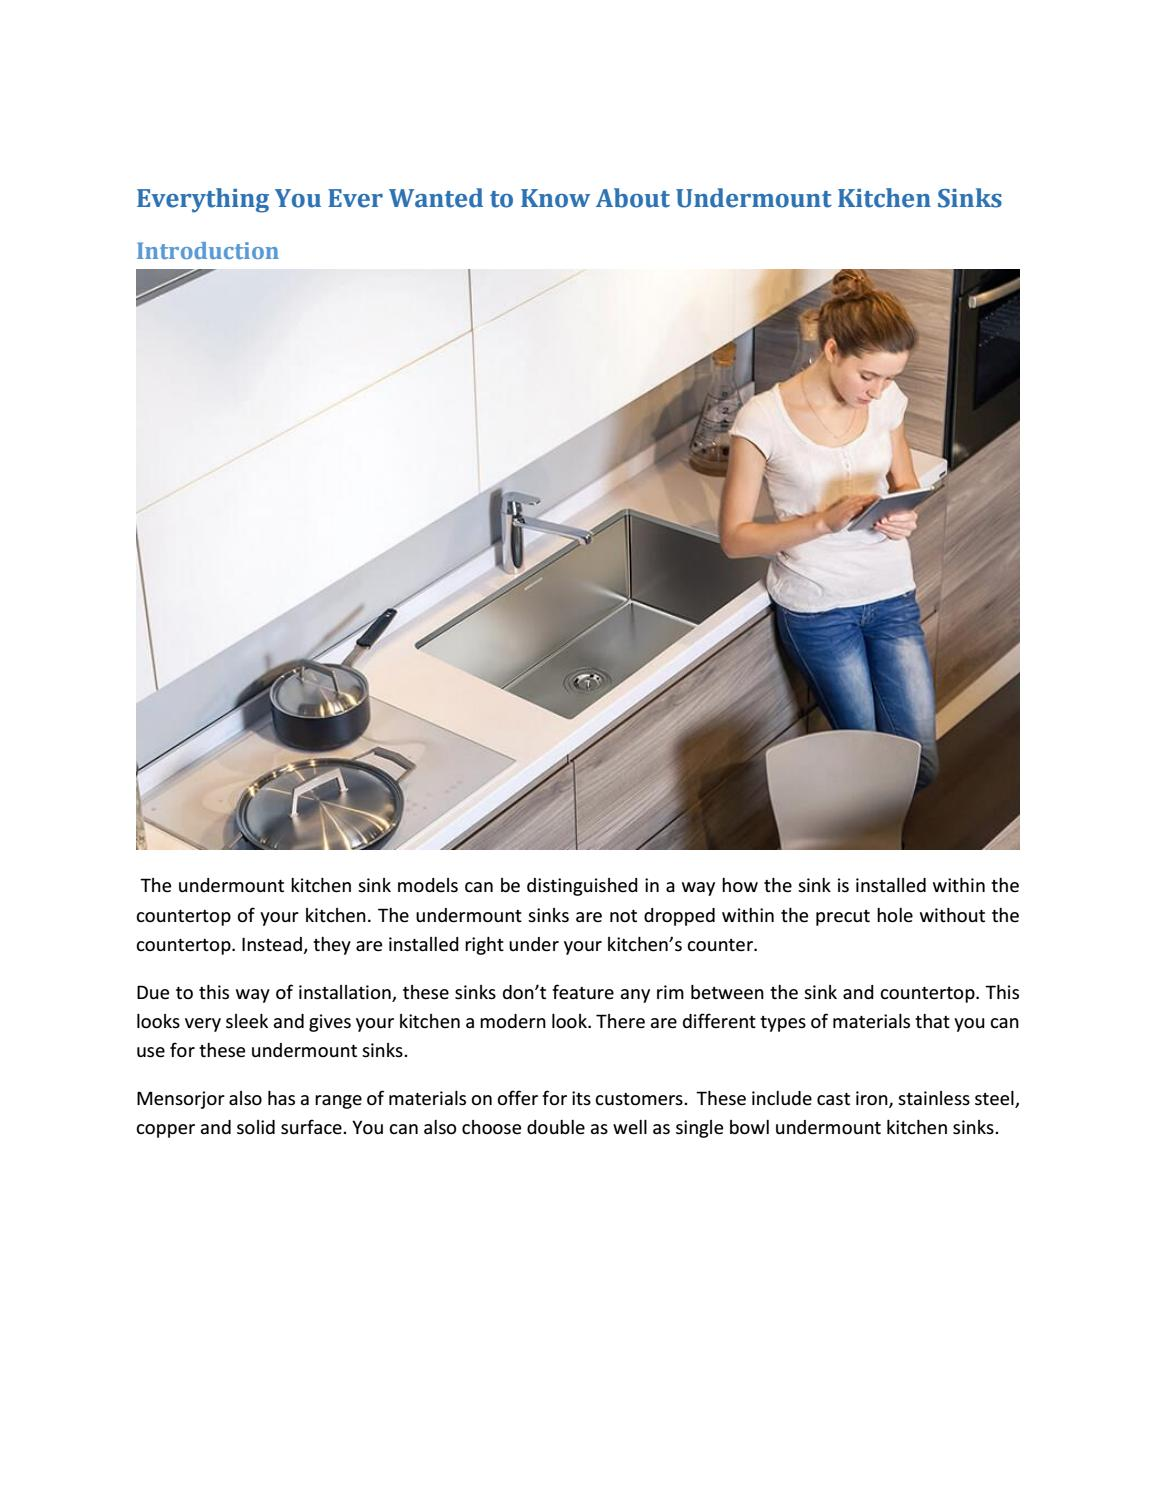 Everything You Ever Wanted To Know About Undermount Kitchen Sinks By Mensarjor Issuu